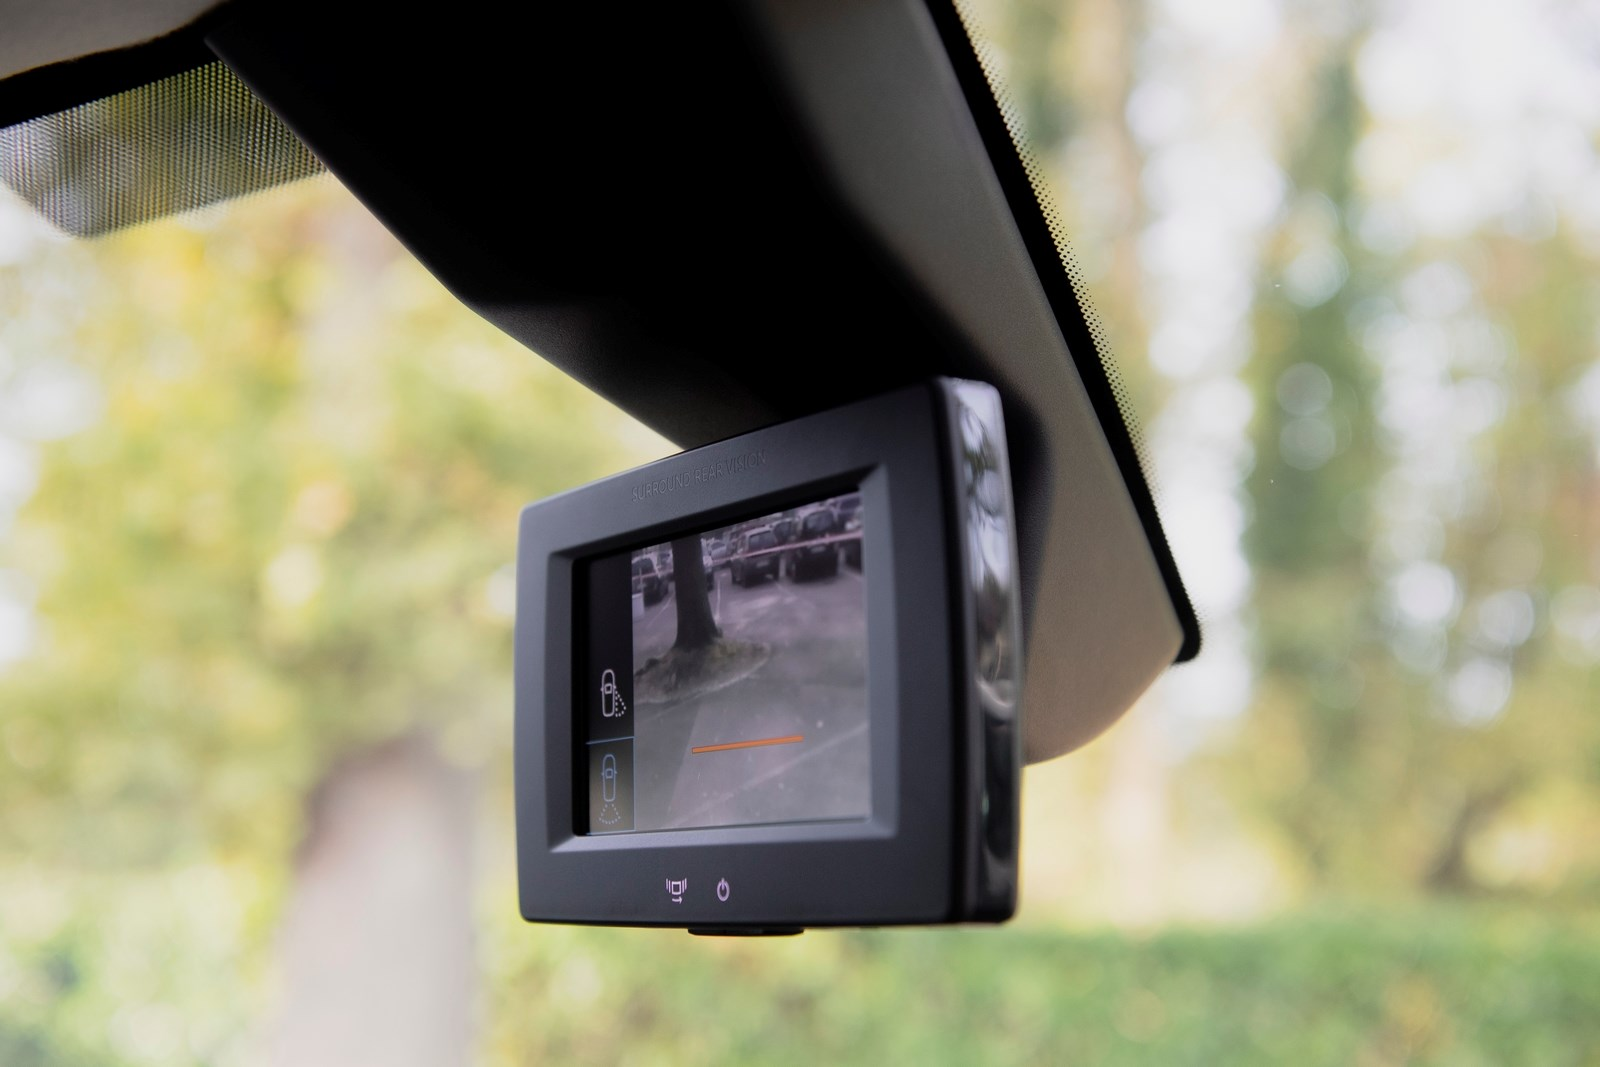 Peugeot Partner van review - 2019 model, Rear Surround Vision camera system screen